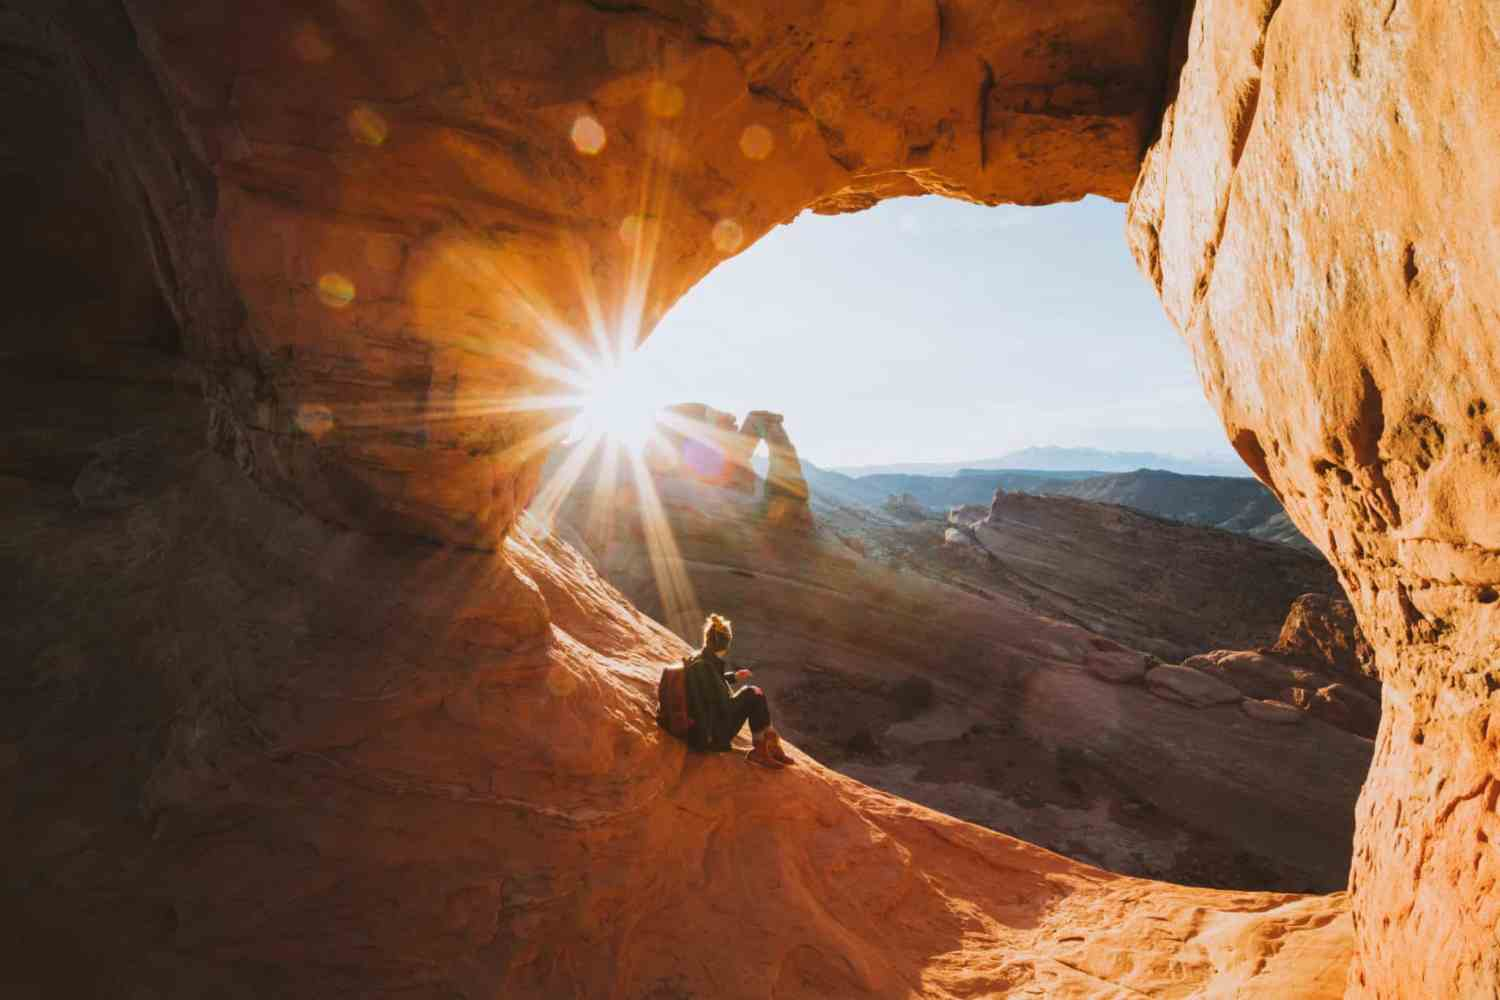 American Southwest road trip stops - Delicate Arch